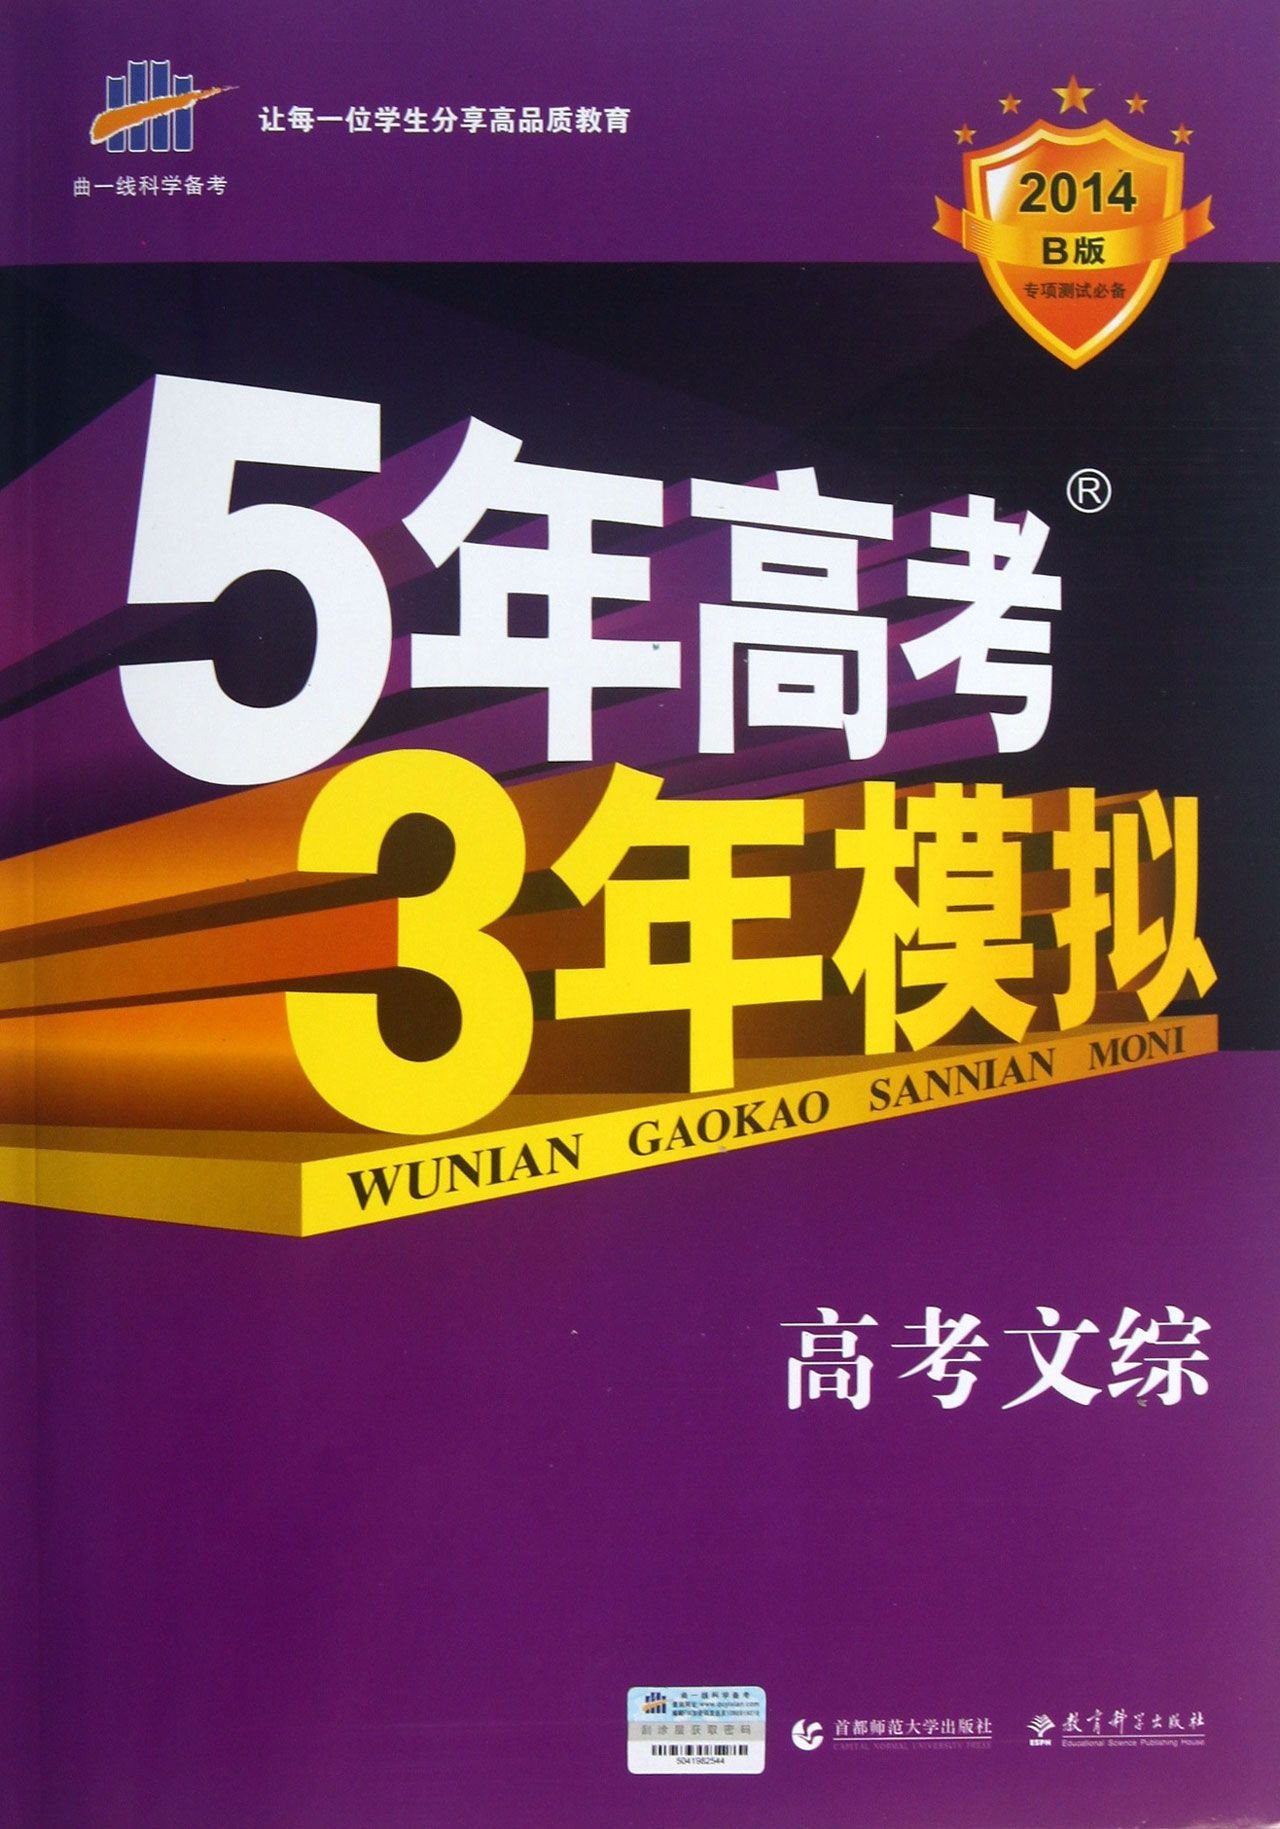 Download 2012-College Entrance Examination Arts Comprehensive Test-College Entrance Examination Tests in 5 Years and Model Tests in 3 Years-B Edition-(Include Keys with Analysis) (Chinese Edition) pdf epub